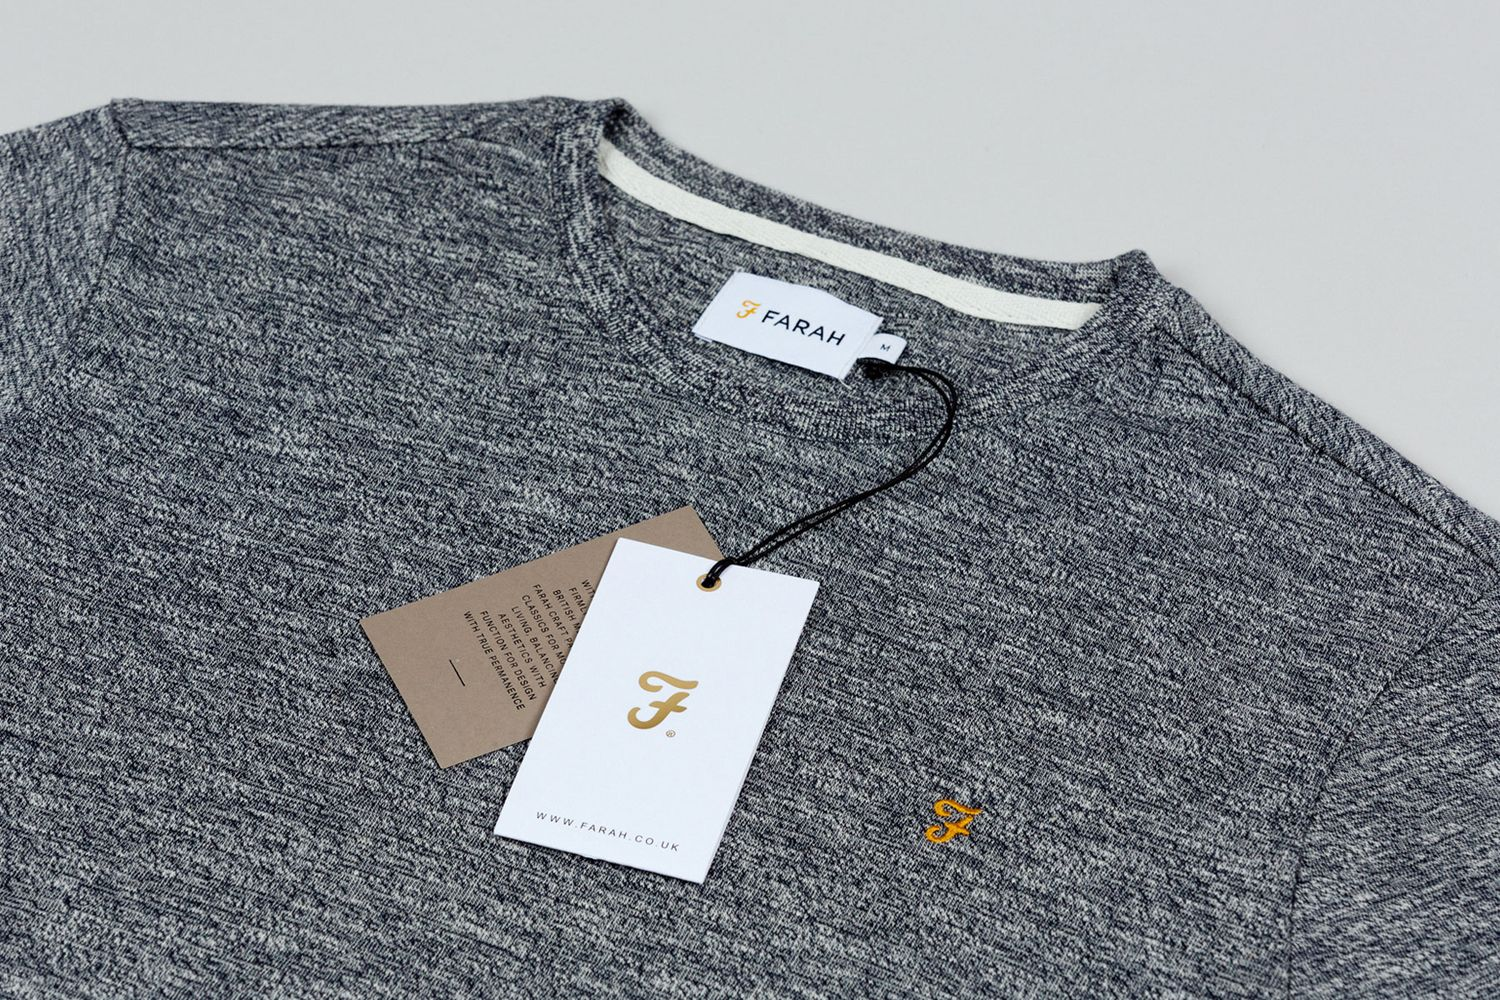 Design t shirt label - Brand Identity Clothing Label And Tags For Men S Fashion Brand Farah By Graphic Design Studio